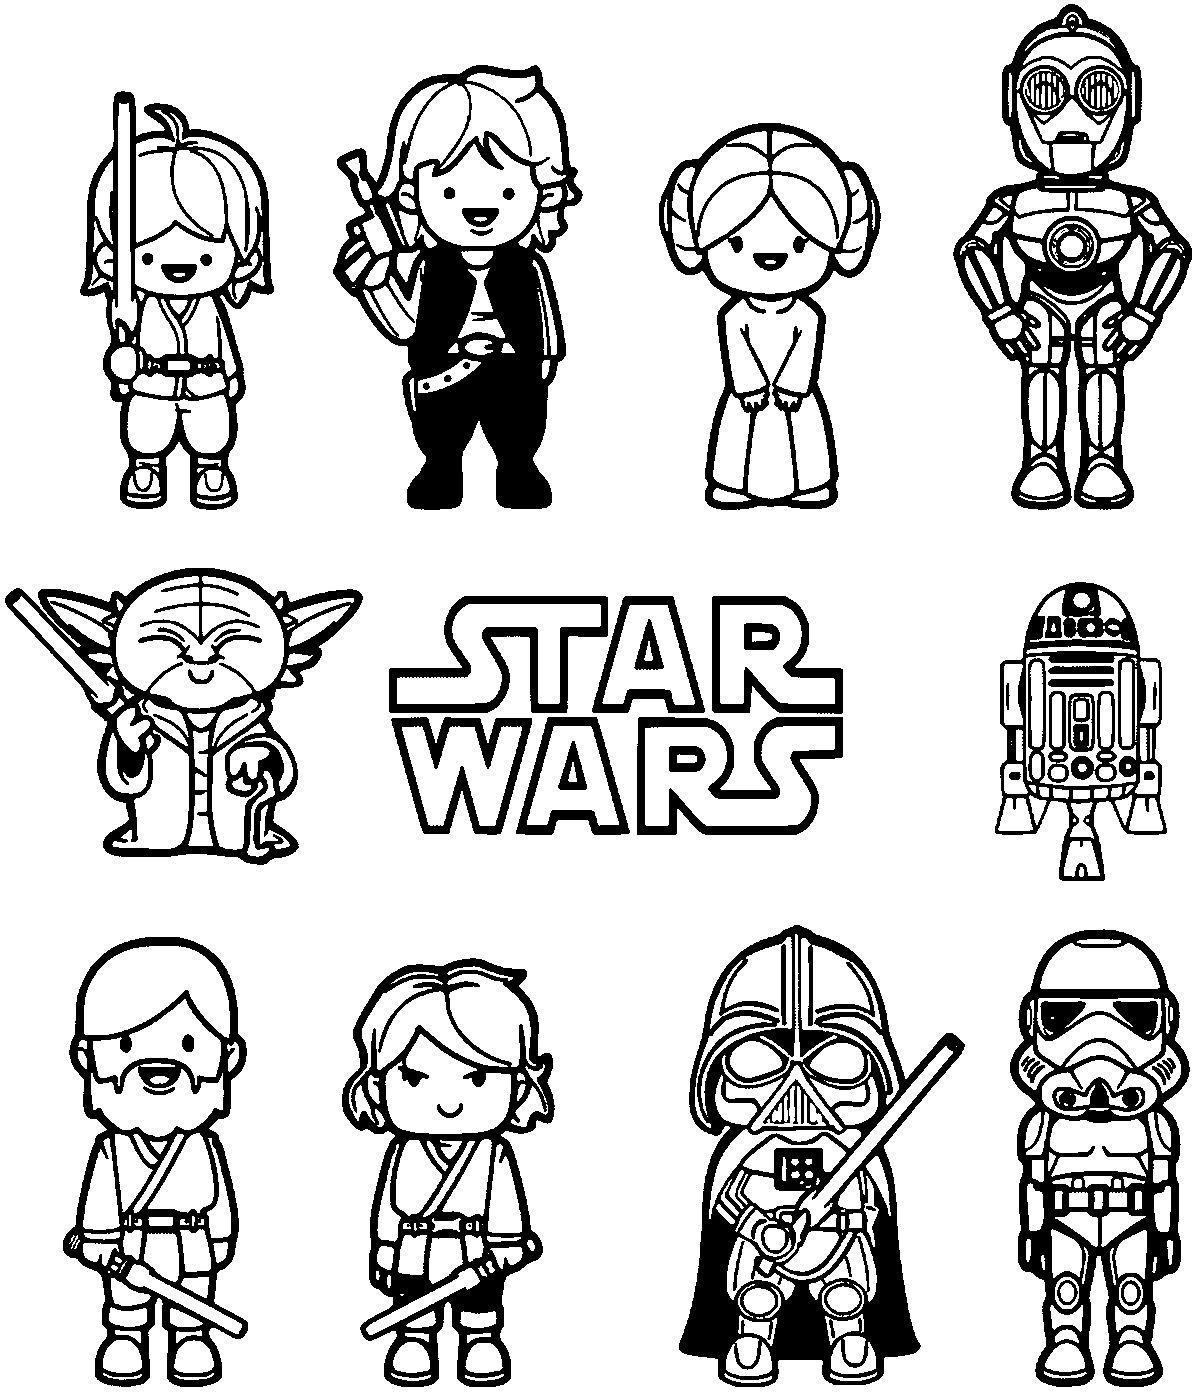 drawings of star wars characters 39star wars39 characters by middle school students lc characters of star wars drawings